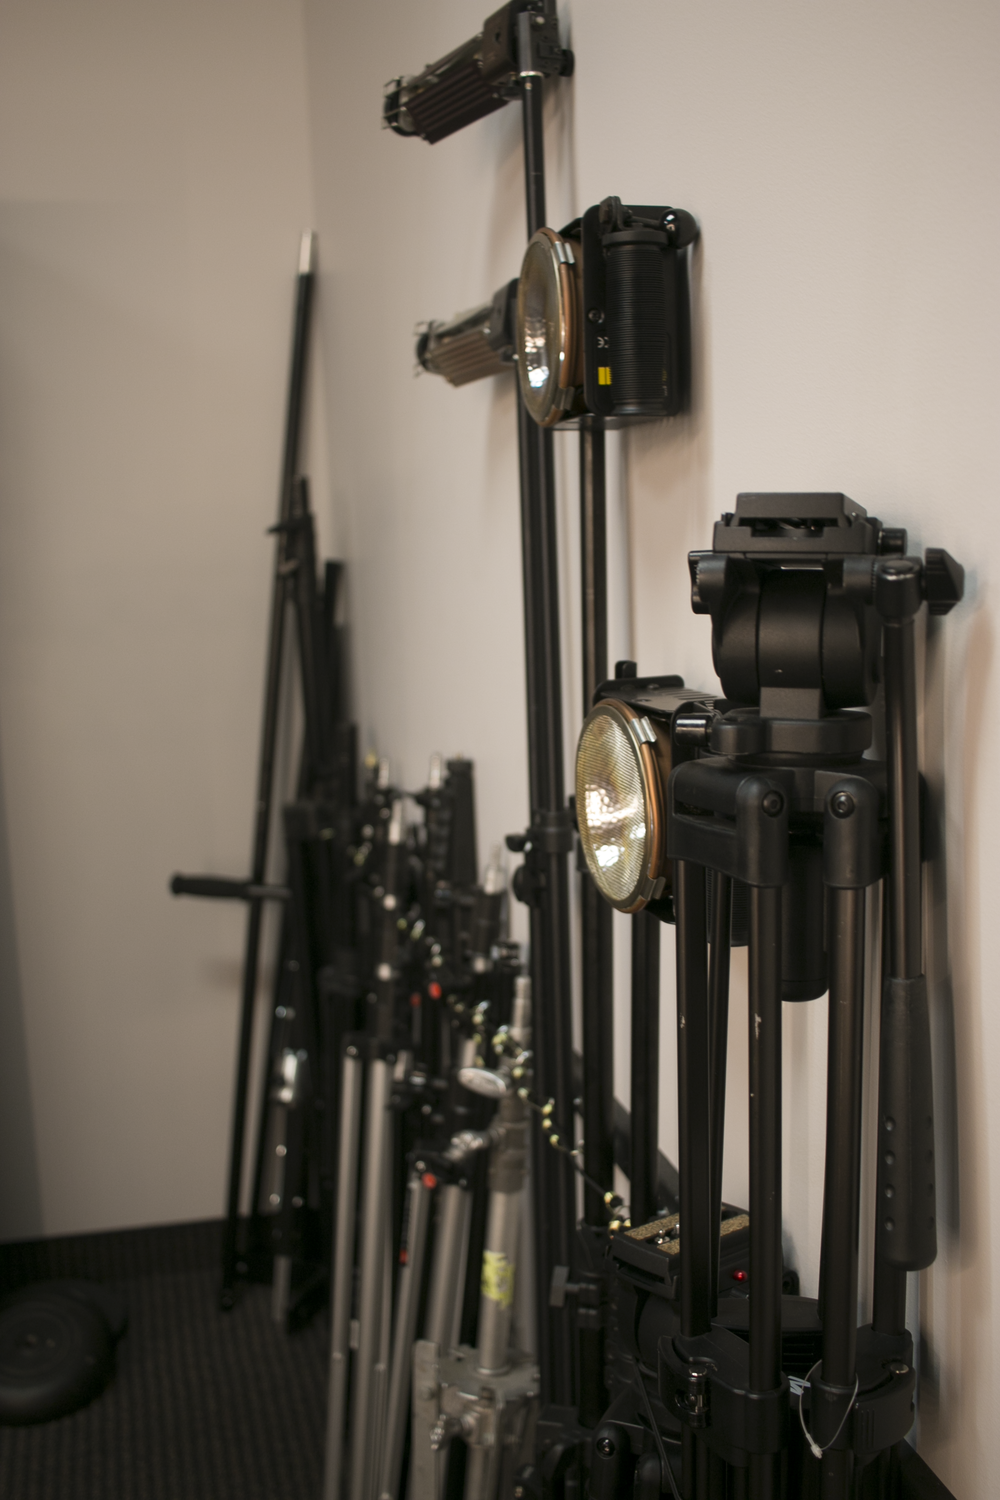 Tripods, c-stands, lights, jib